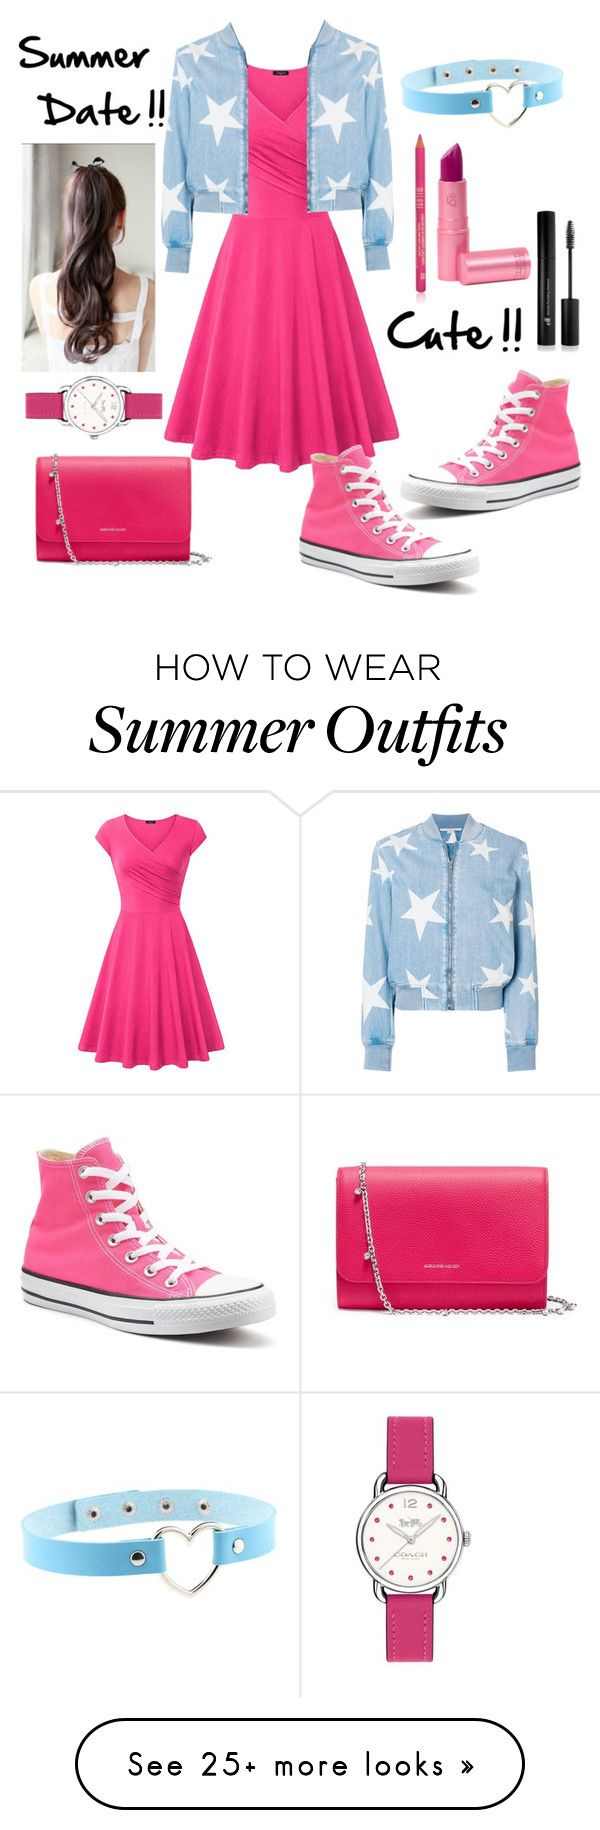 """""""Cute Summer Outfit!!!!"""" by andrea27lobo on Polyvore featuring WithChic, STELLA McCARTNEY, Converse, Lipstick Queen, Forever 21, Alexander McQueen and Coach"""